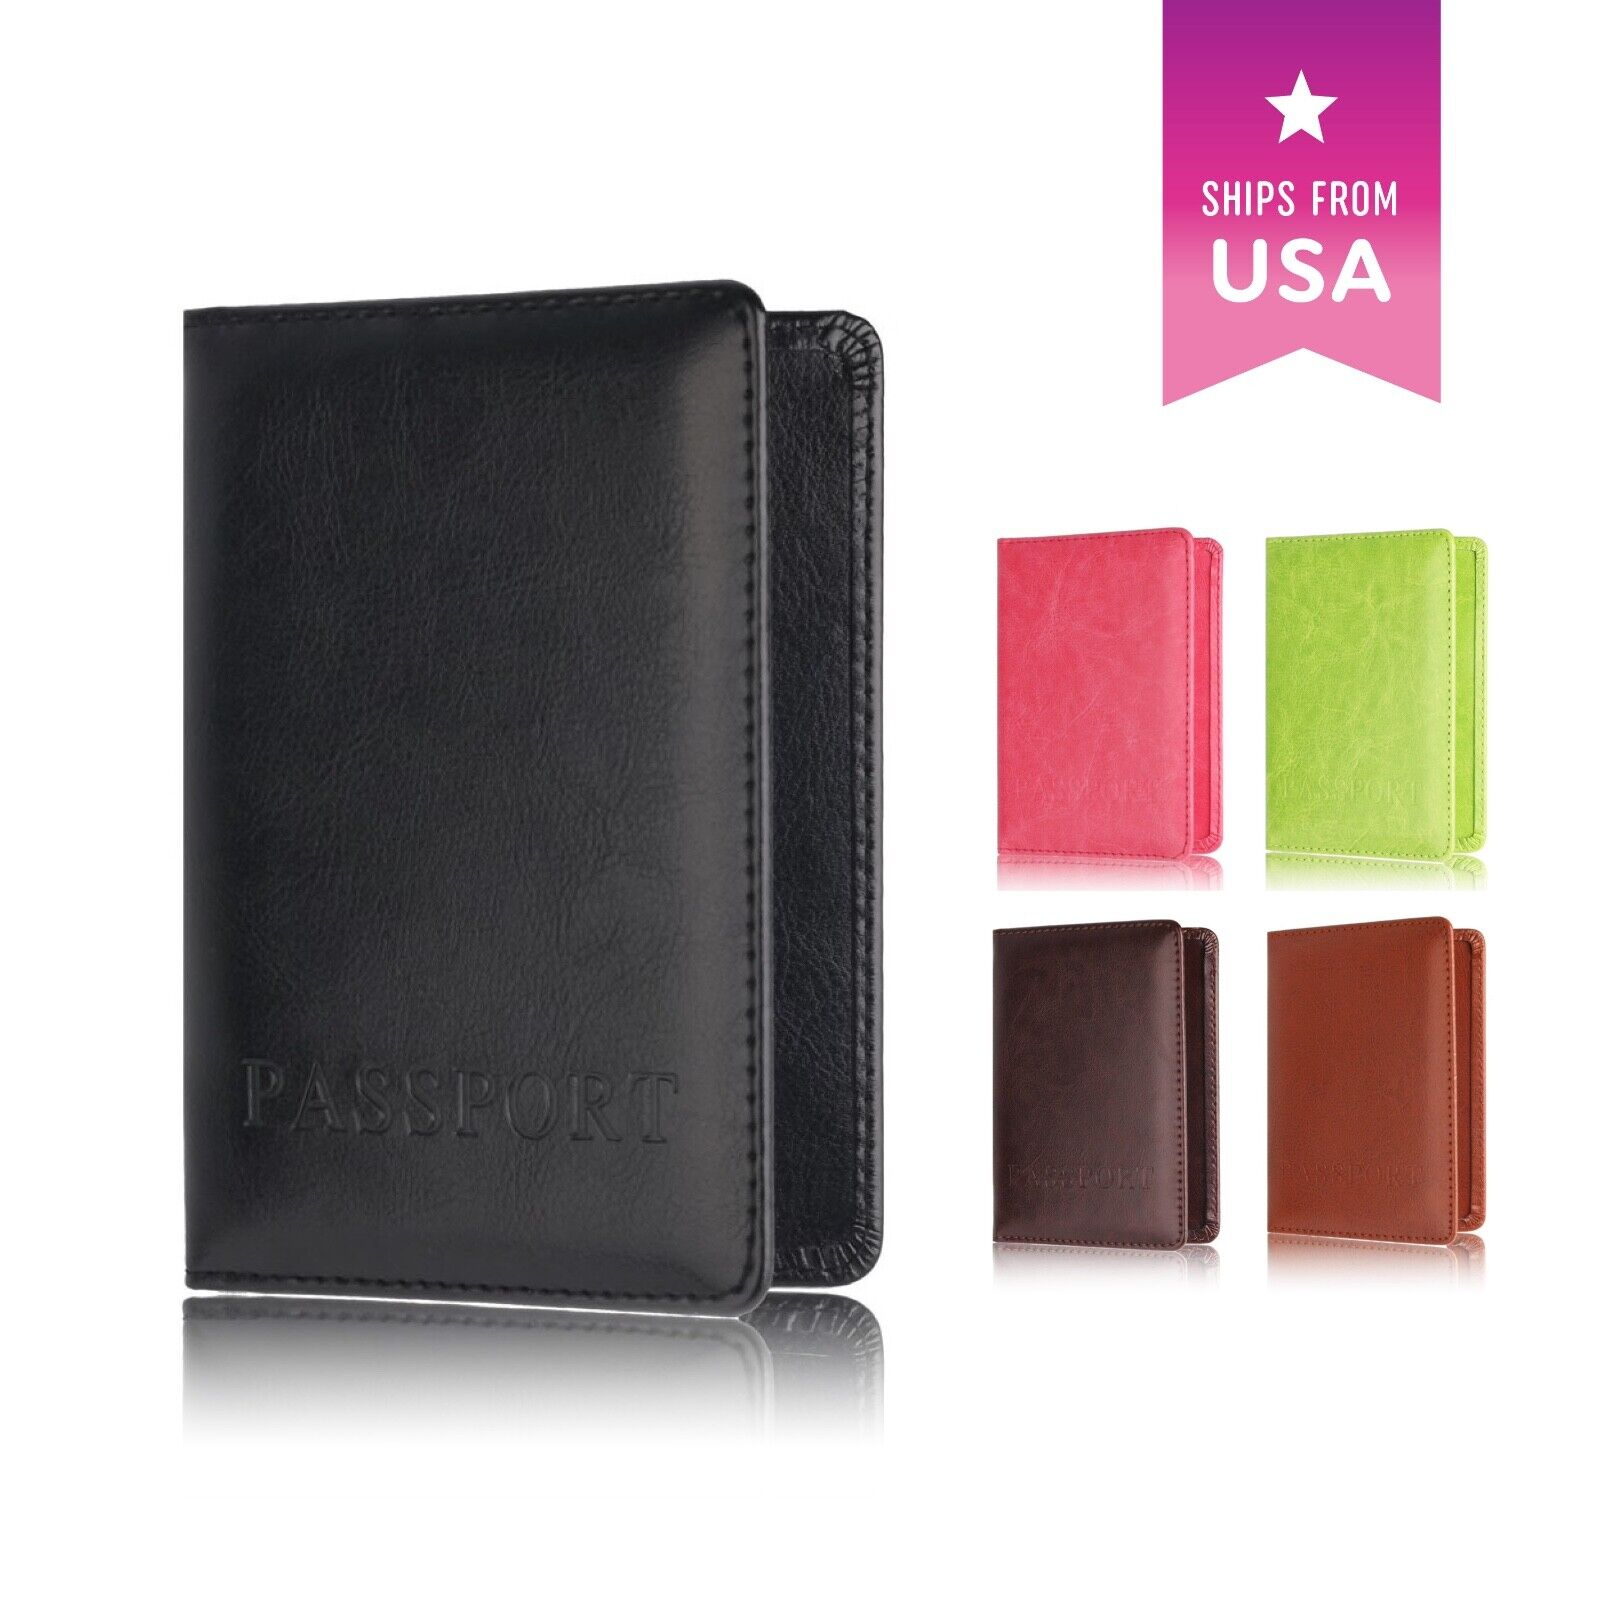 Passport Holder Travel Organizer Cover with Card Case Wallet Soft Vega... - s l1600